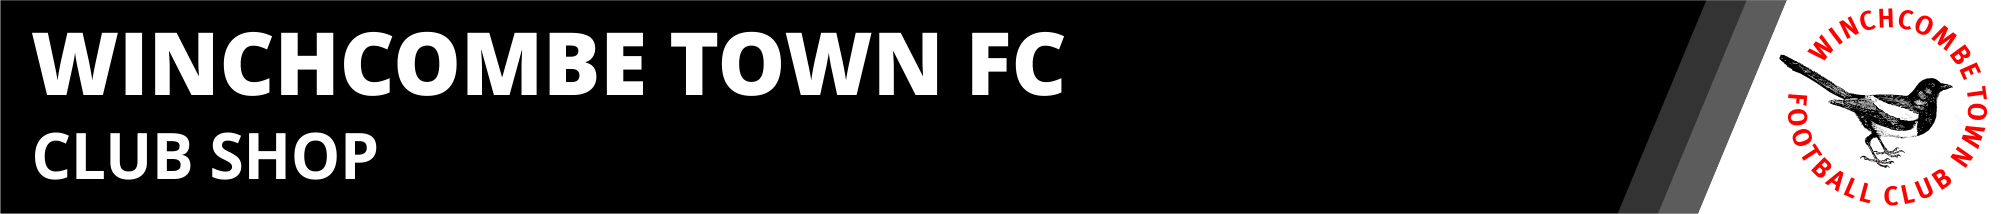 winchcombe-town-fc-club-shop-banner.png